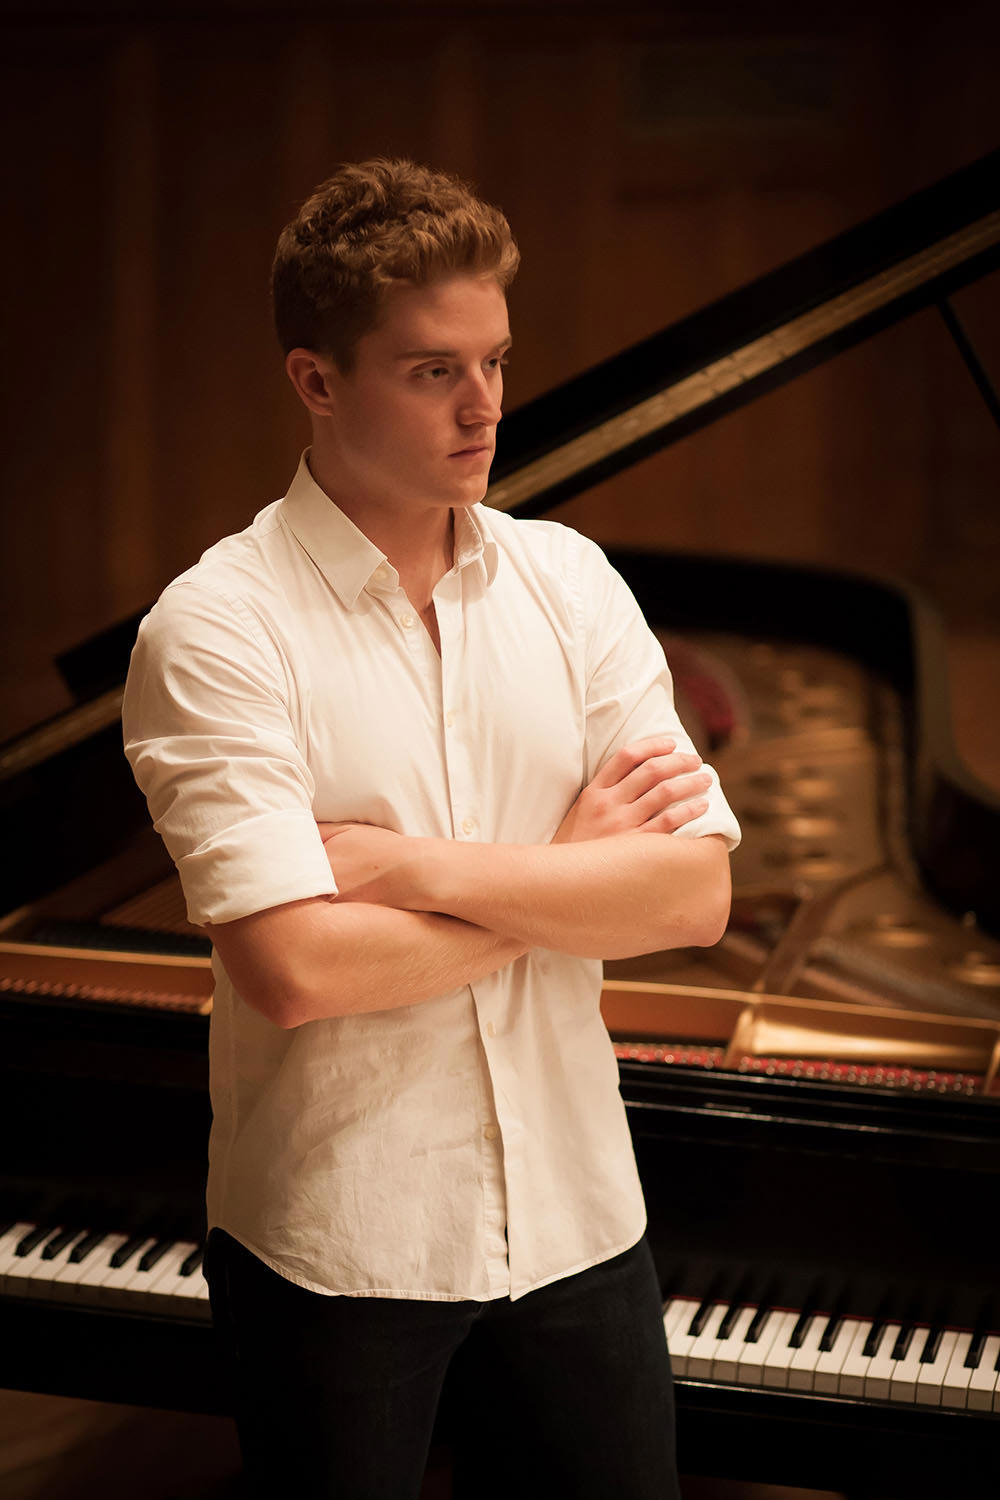 Nicholas-Dold-Collaborative-Pianist